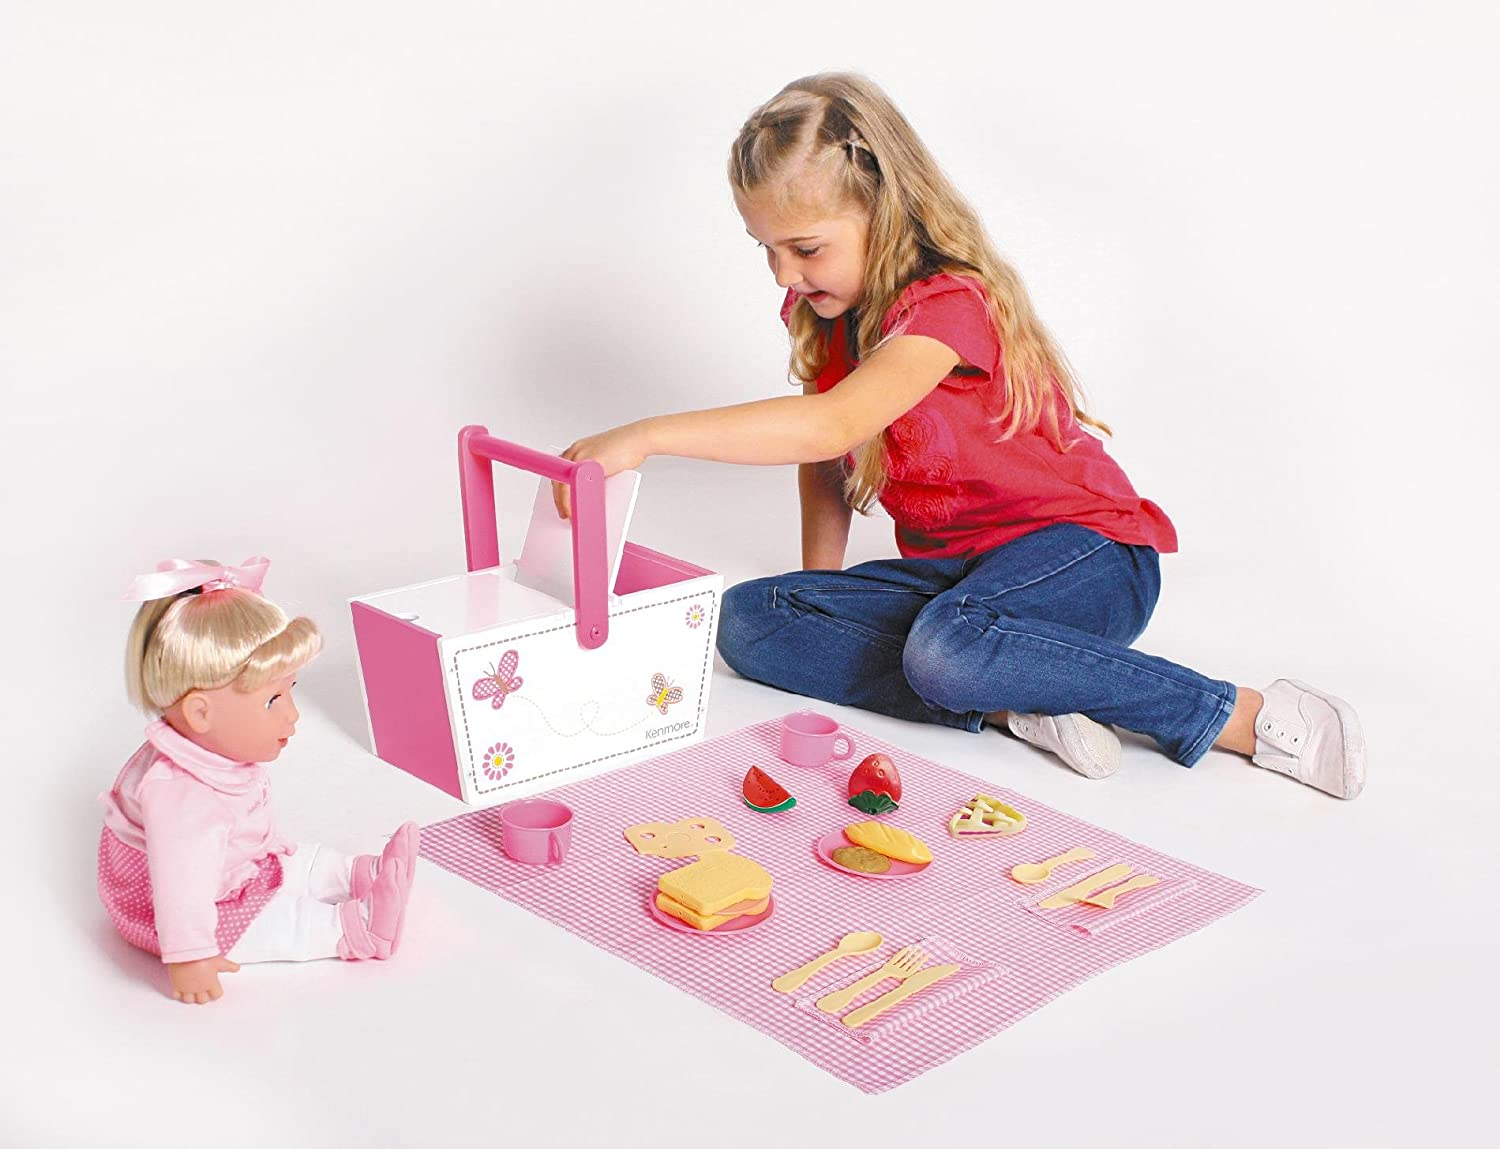 My First Kenmore Picnic Set Pretend Play Toy Ny First Kenmore SG/_B00NB89EVO/_US